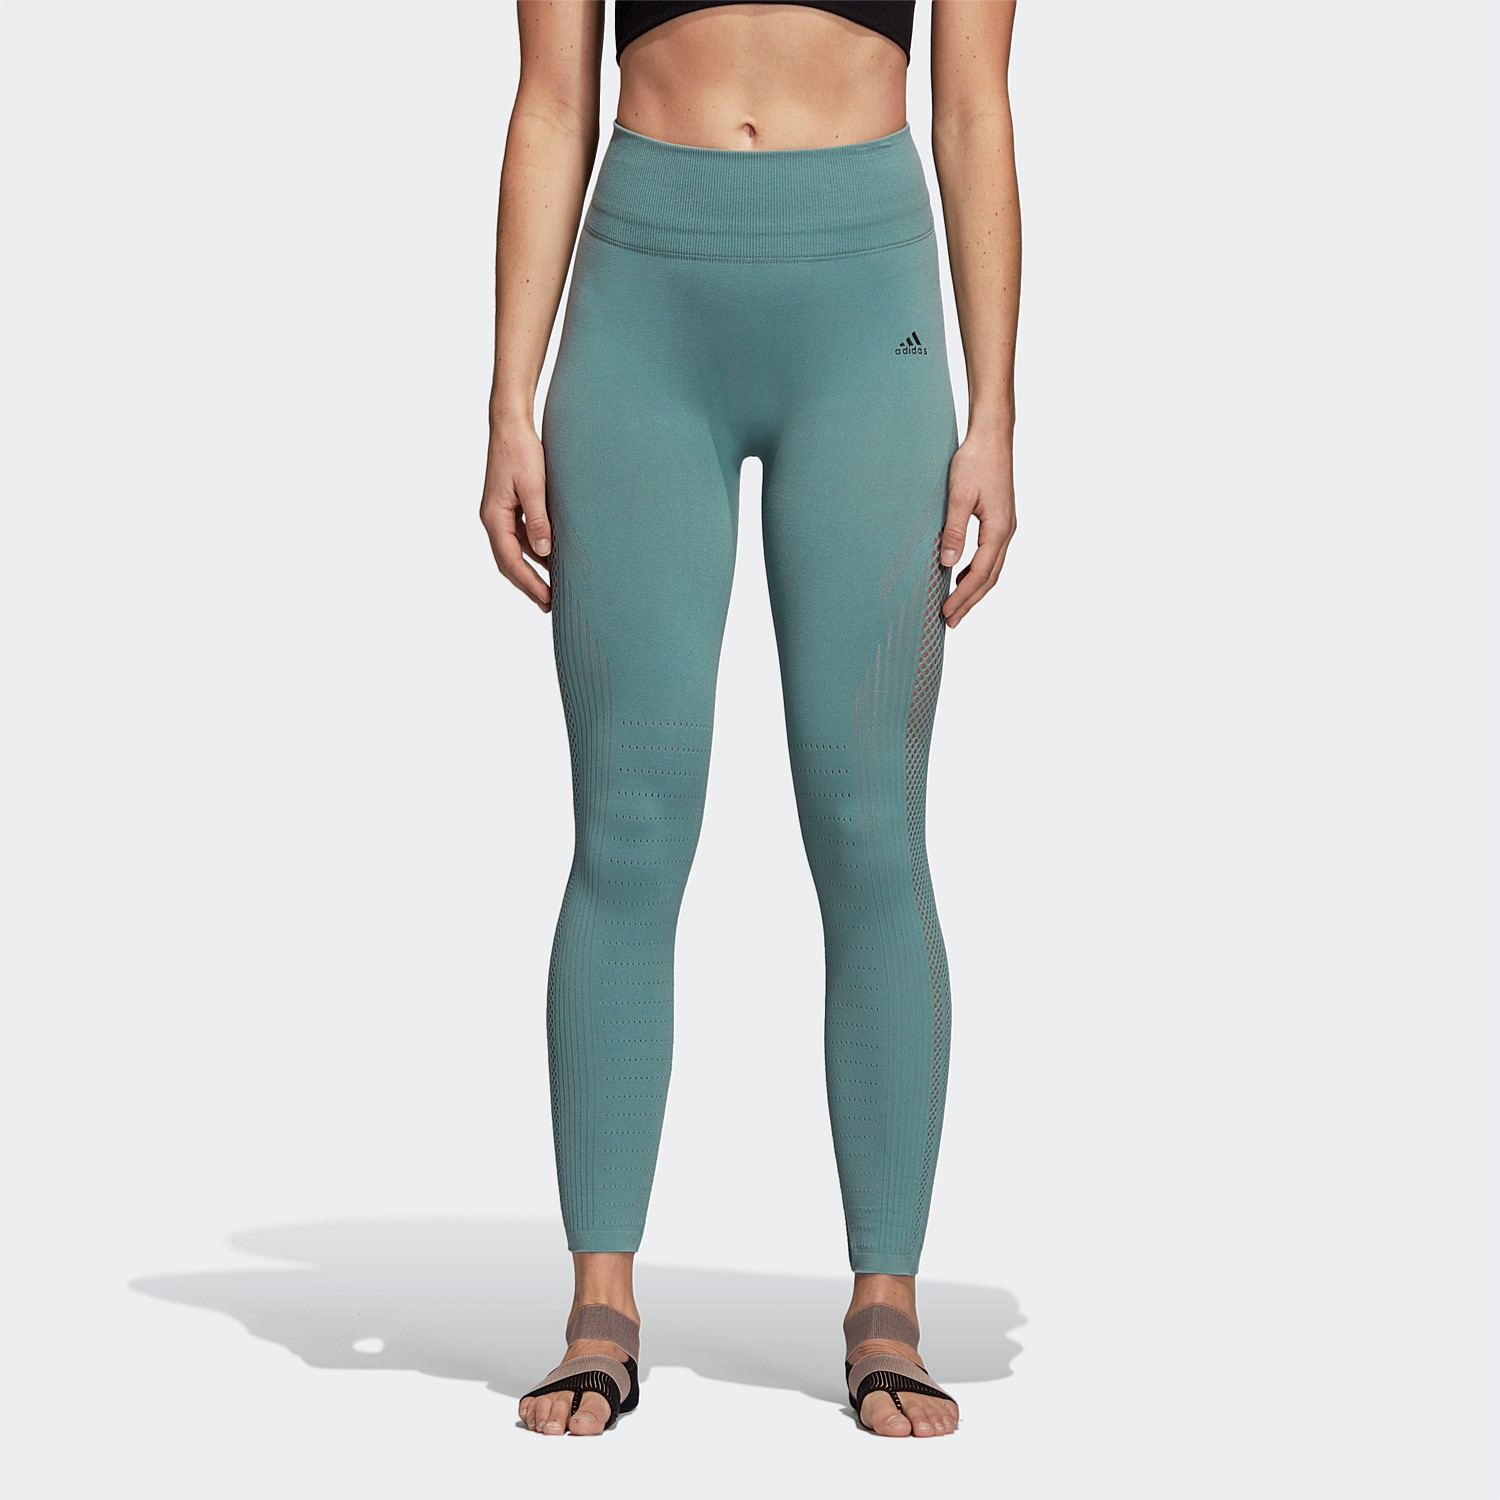 b954165d6044d Seamless construction for second-skin fit and feel